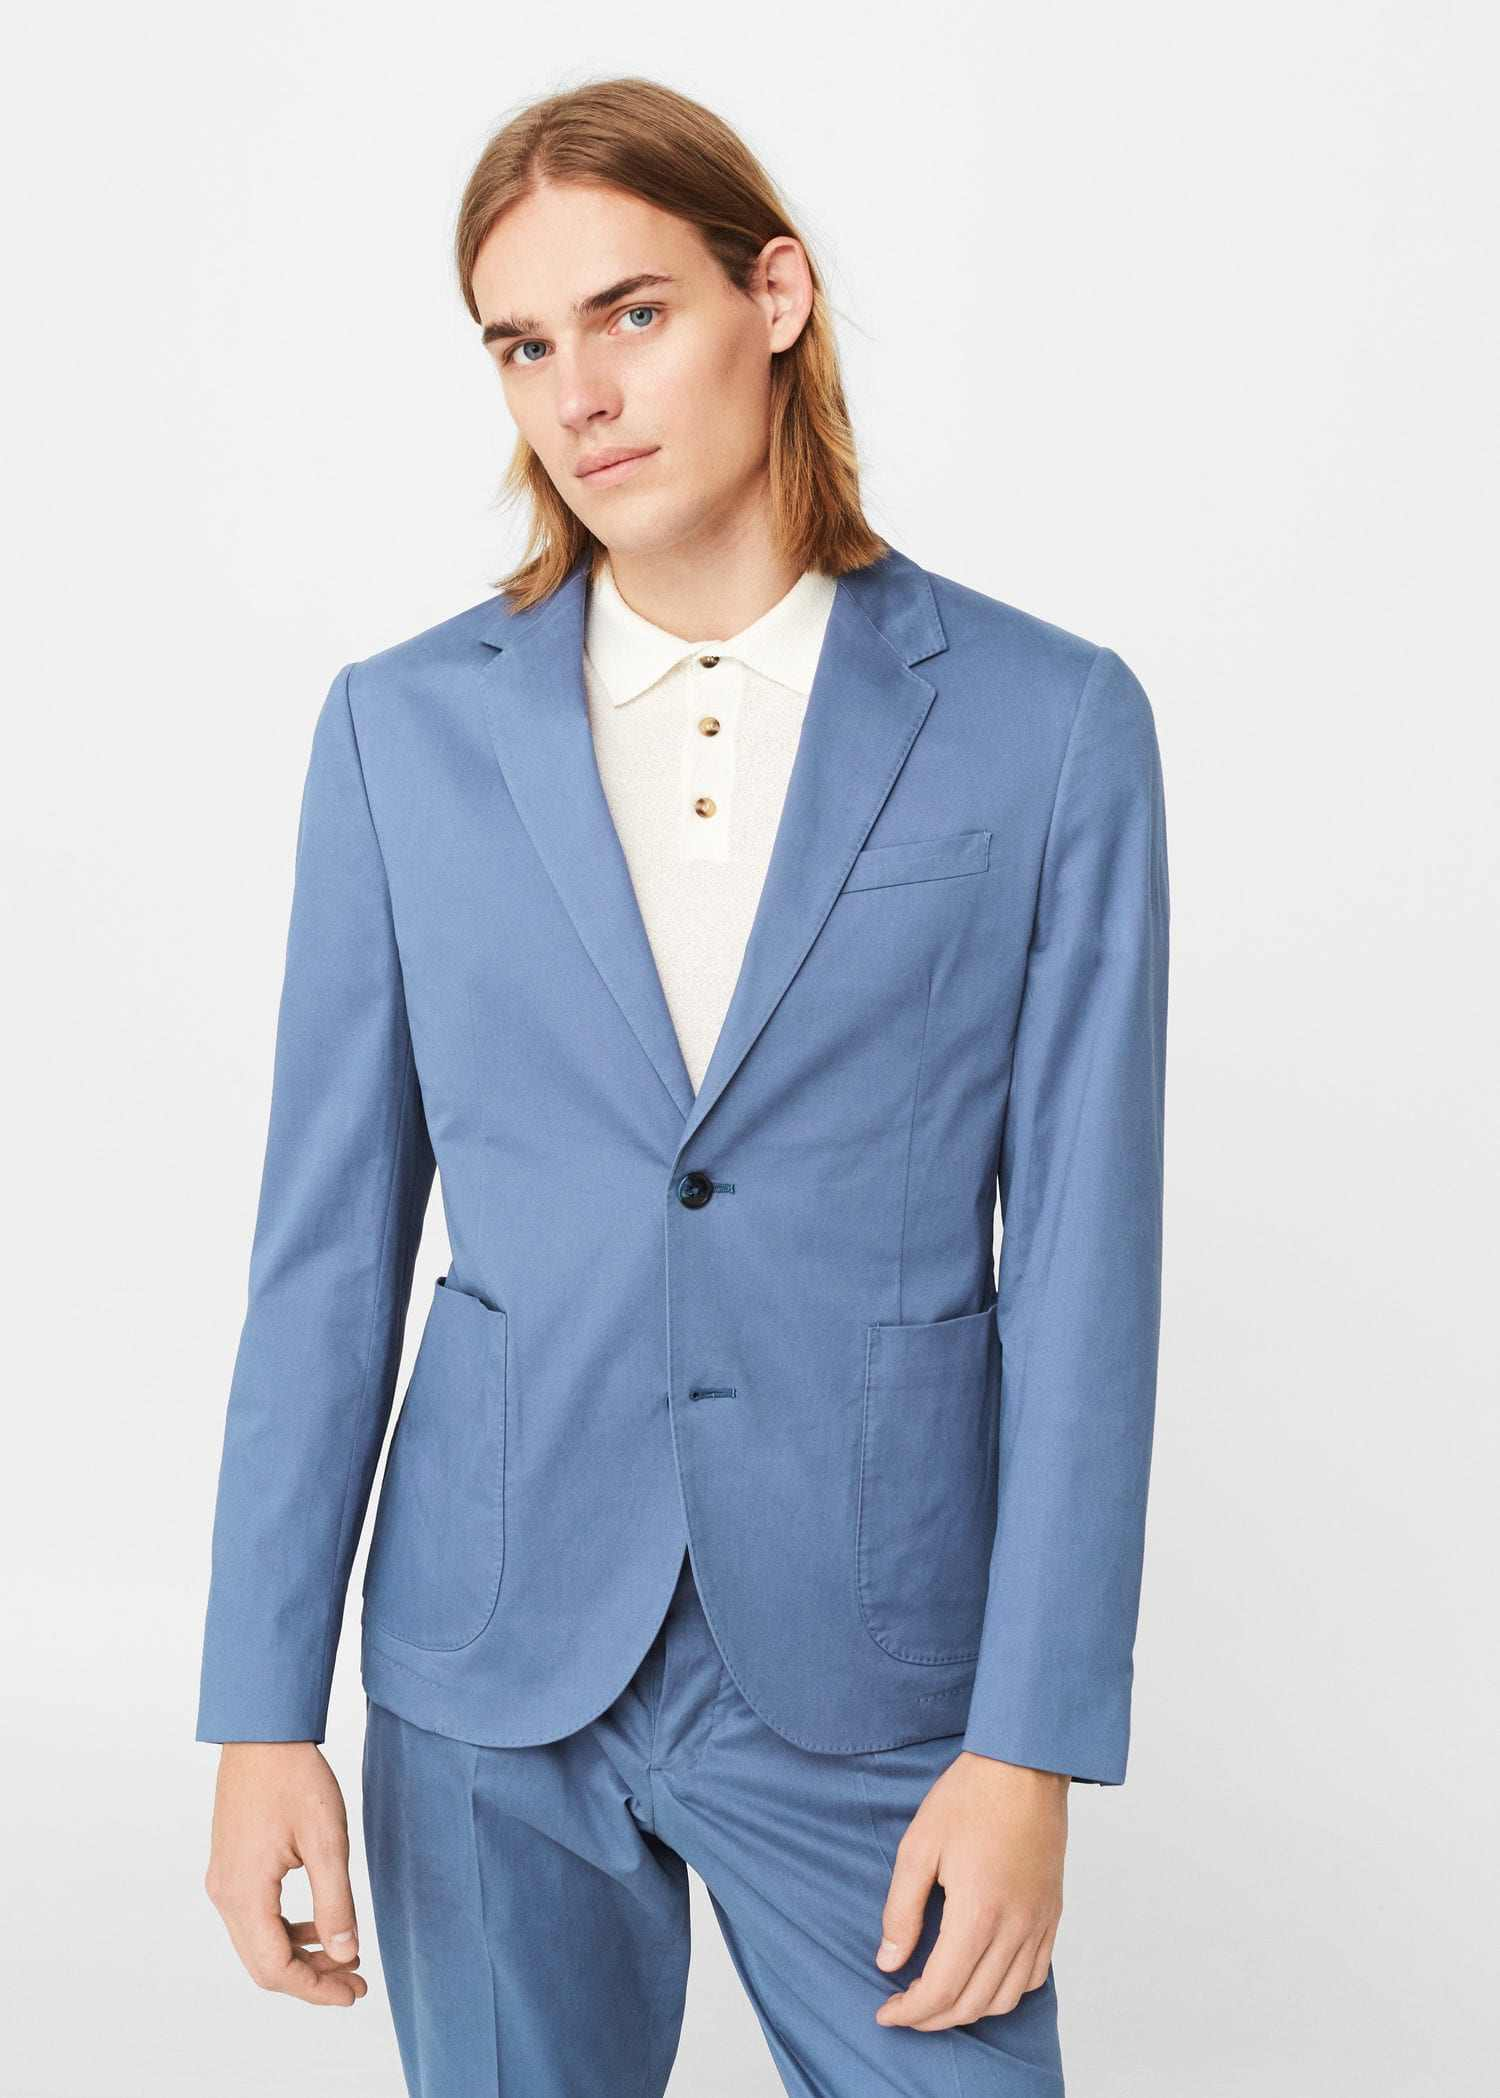 Embroidered polo shirt and blazer by Mango. Source.